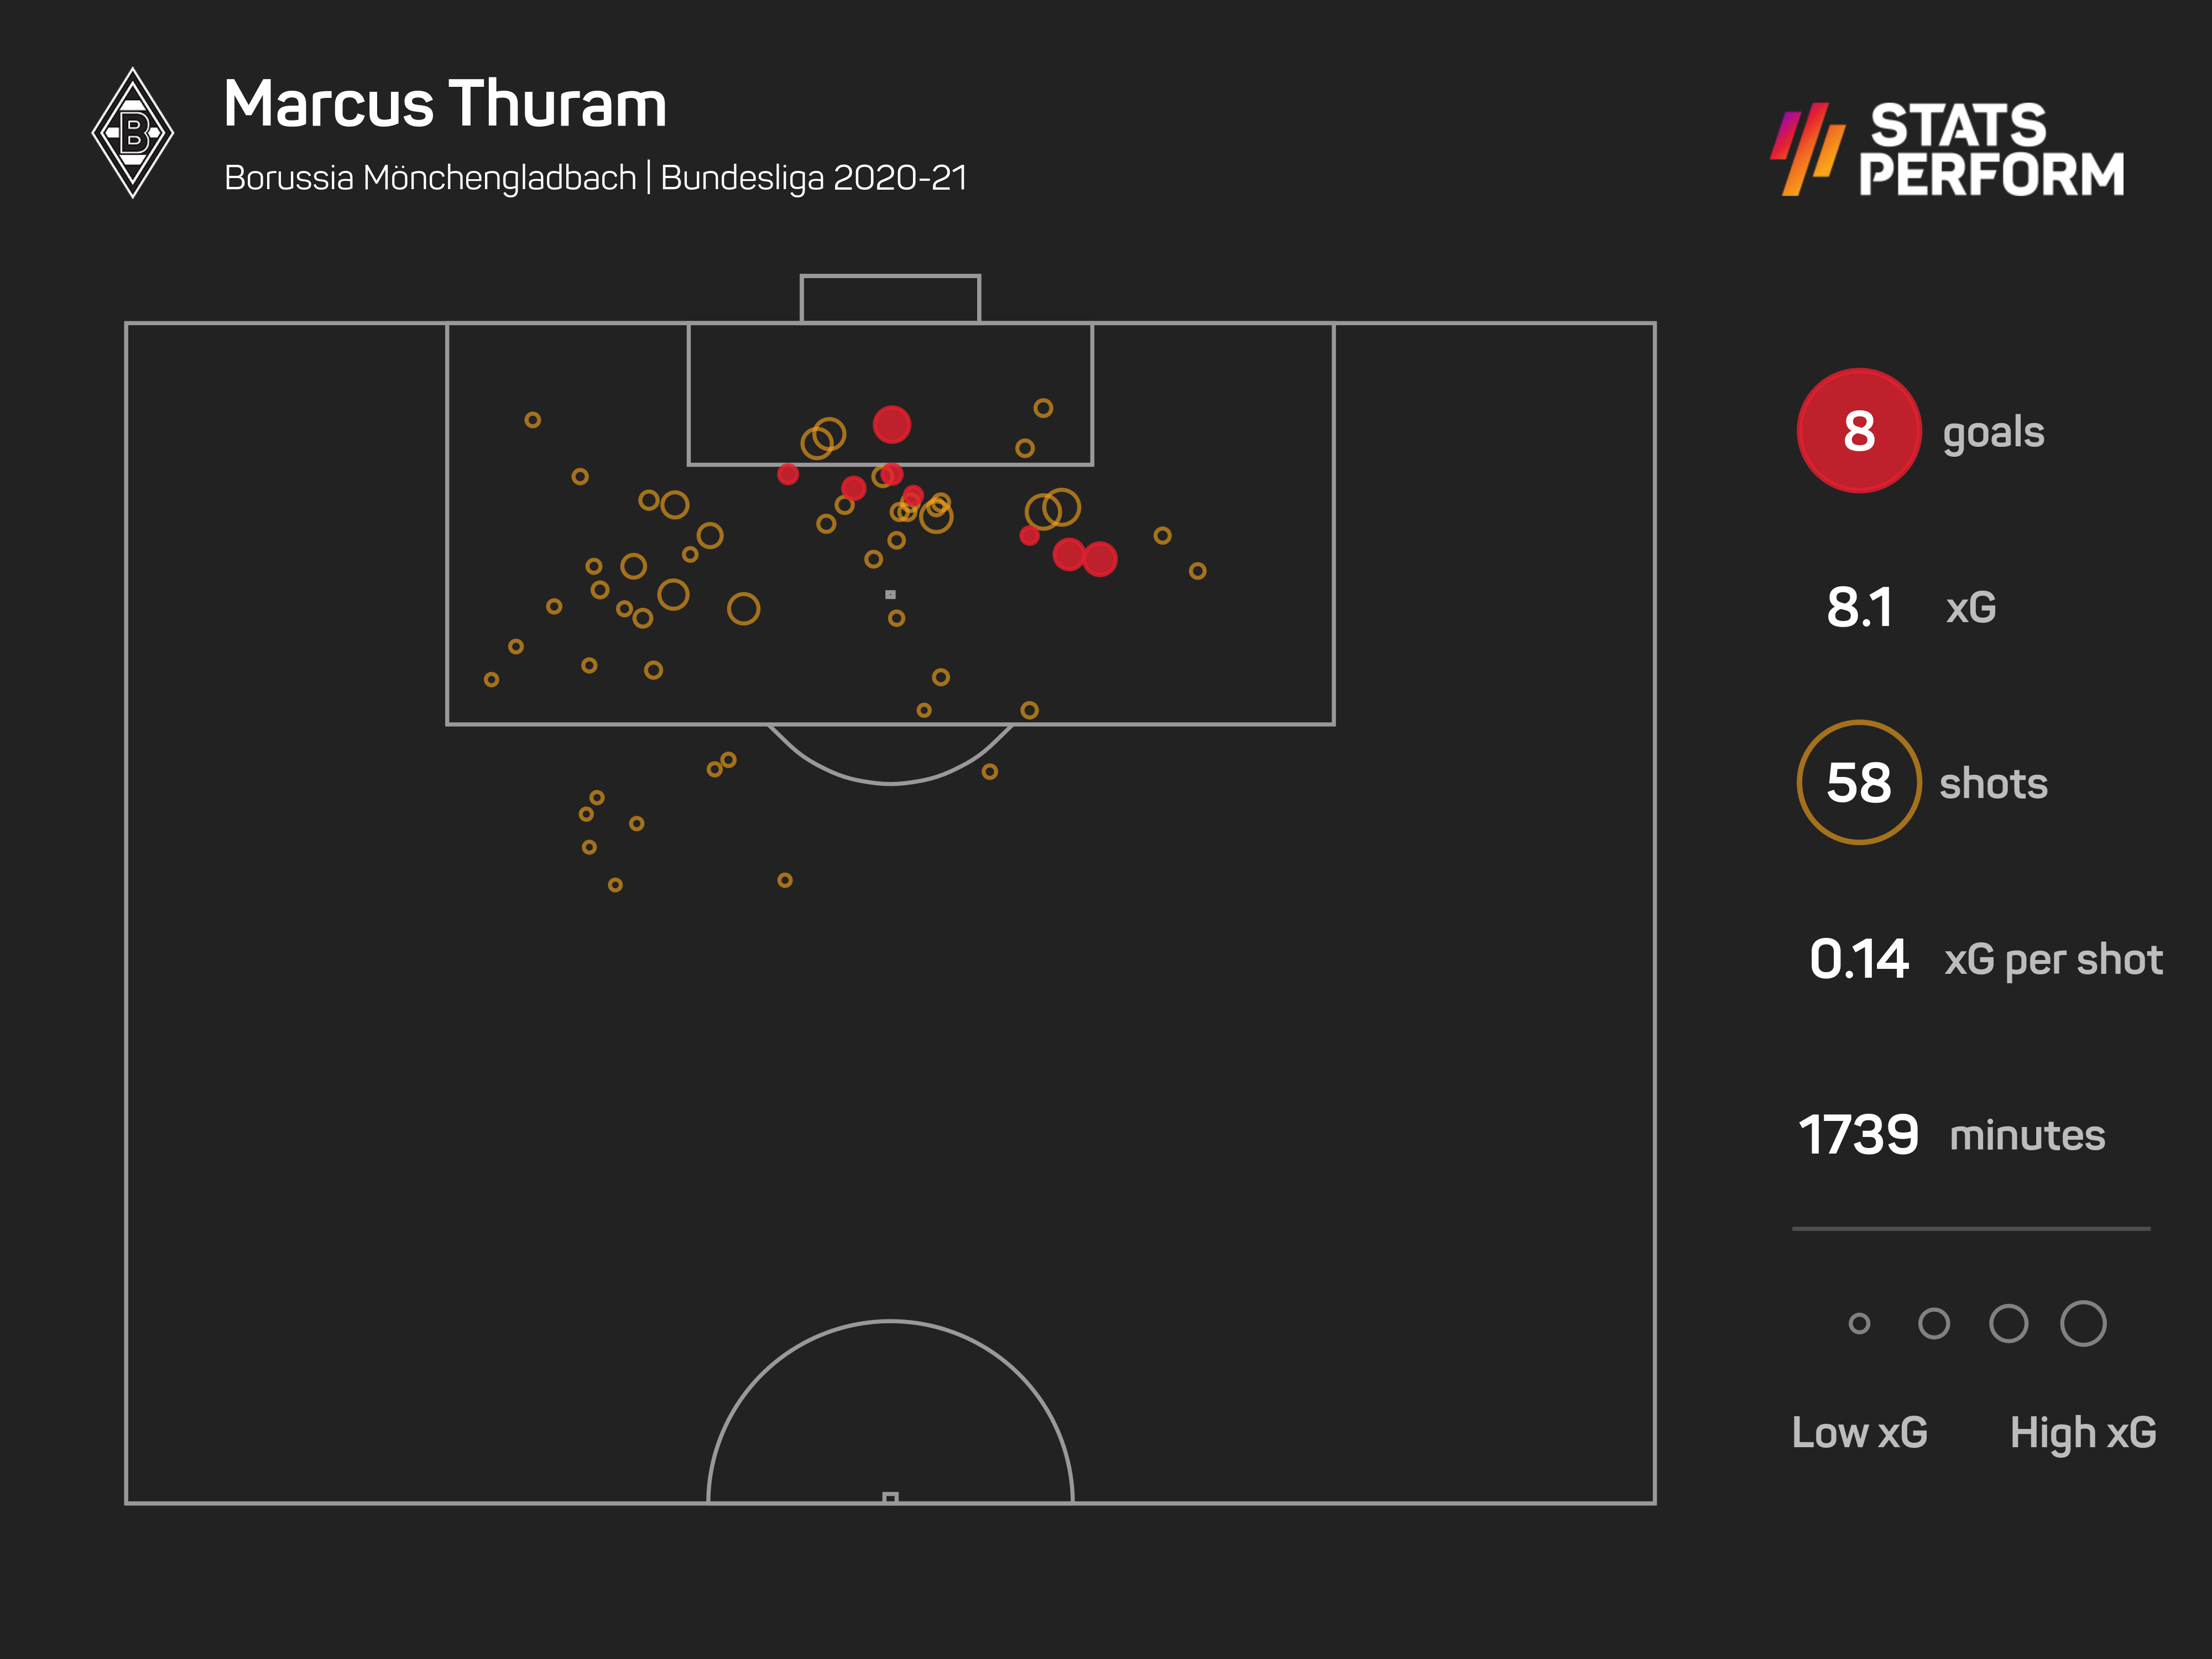 Marcus Thuram could be a strong wildcard option in the box for France